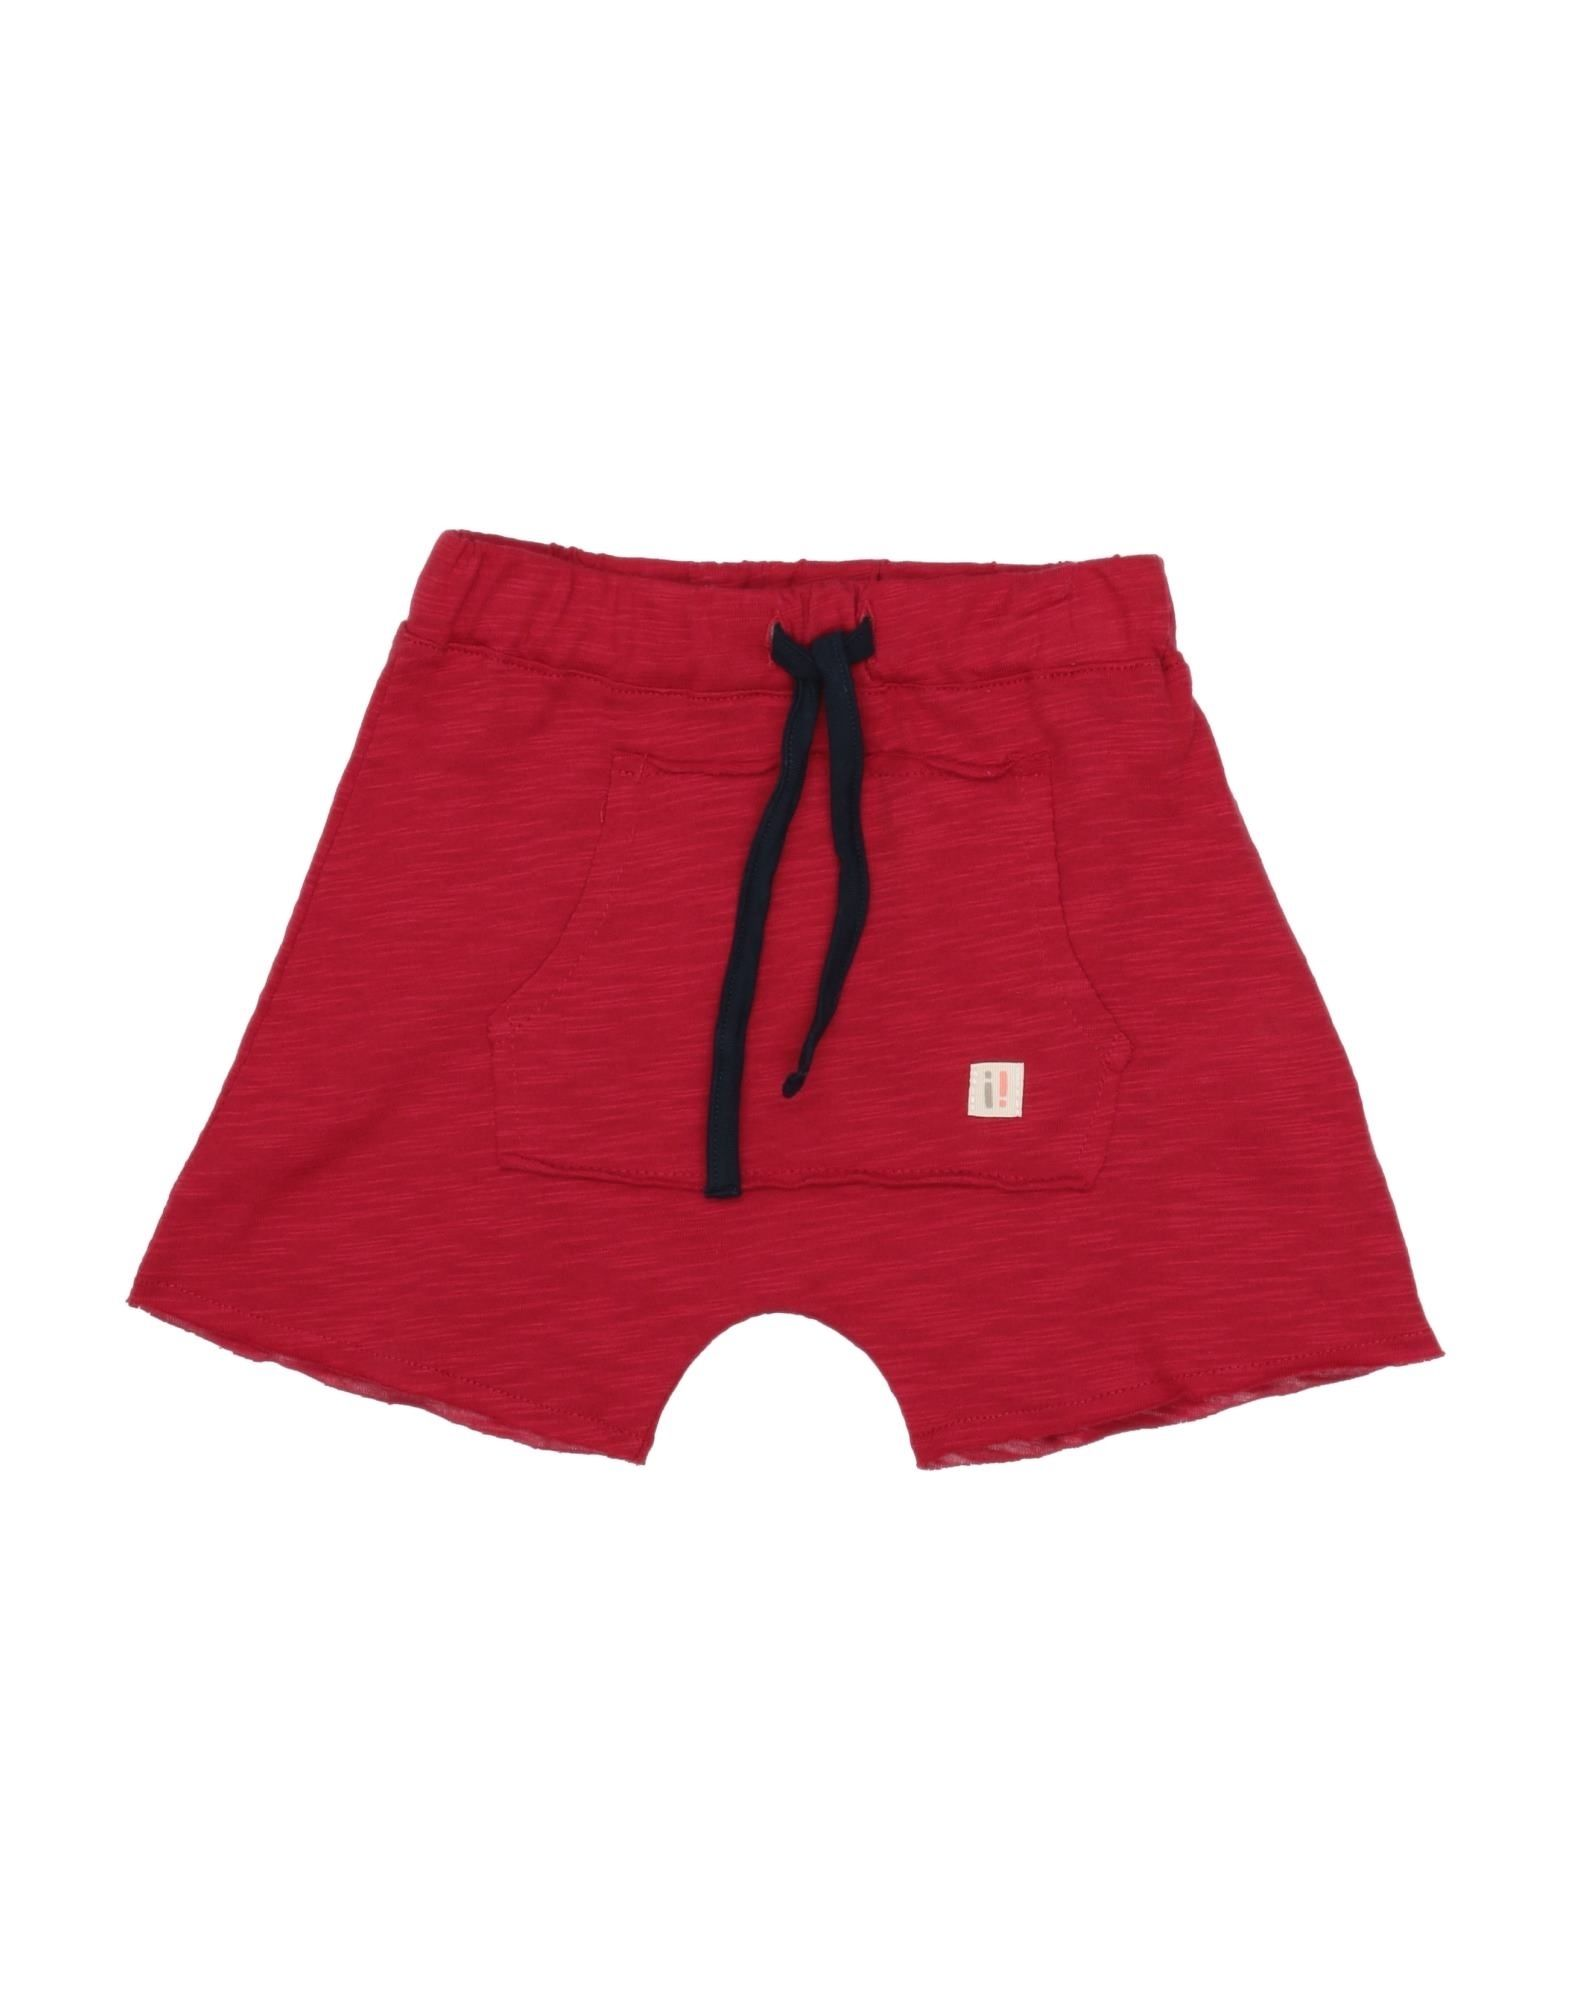 Semprenoi Kids' ! Bermudas In Red